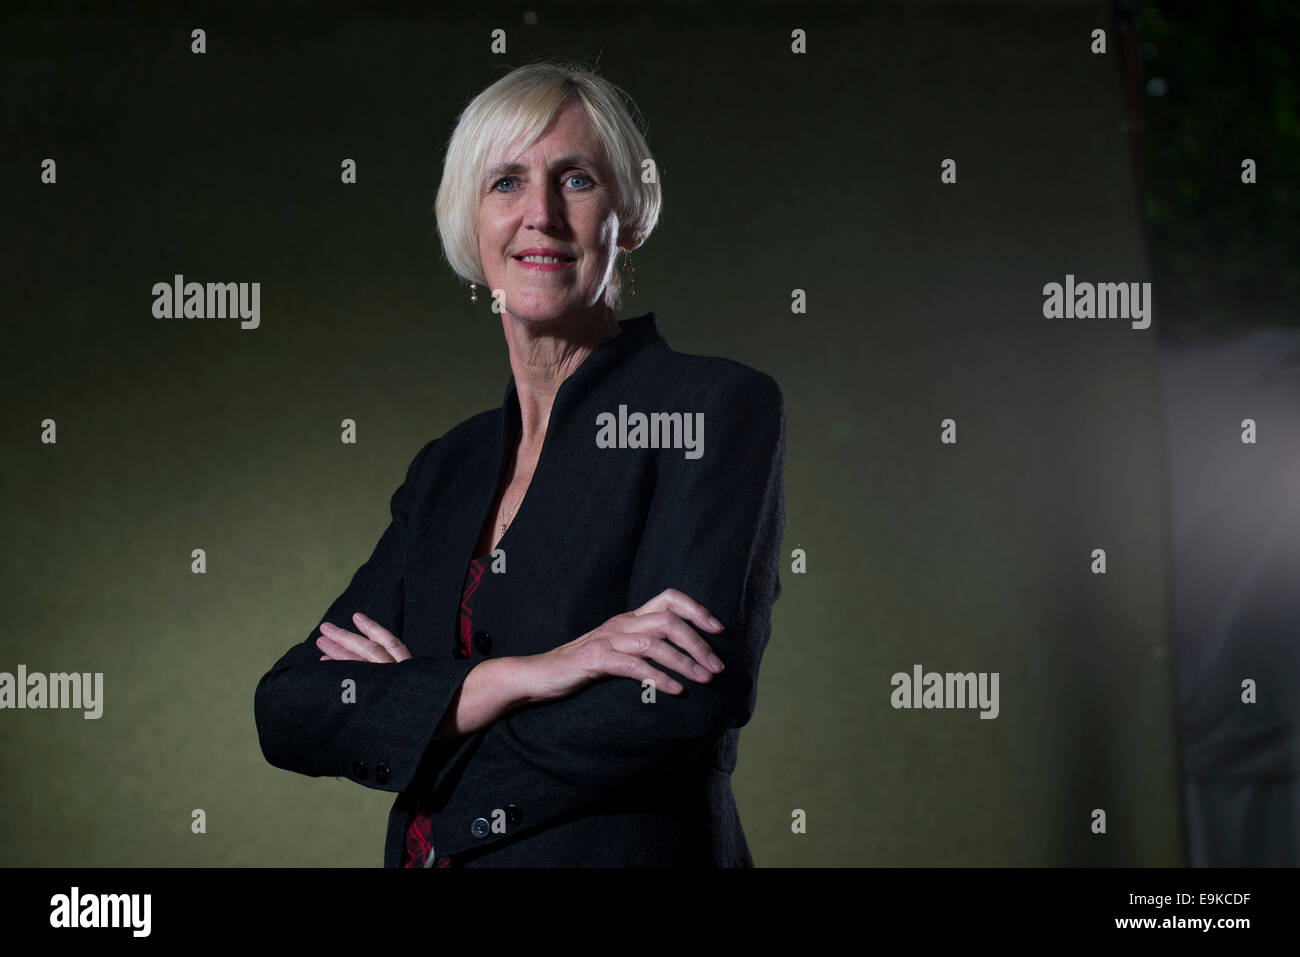 Crime novelist and screenwriter Lin Anderson appears at the Edinburgh International Book Festival. - Stock Image